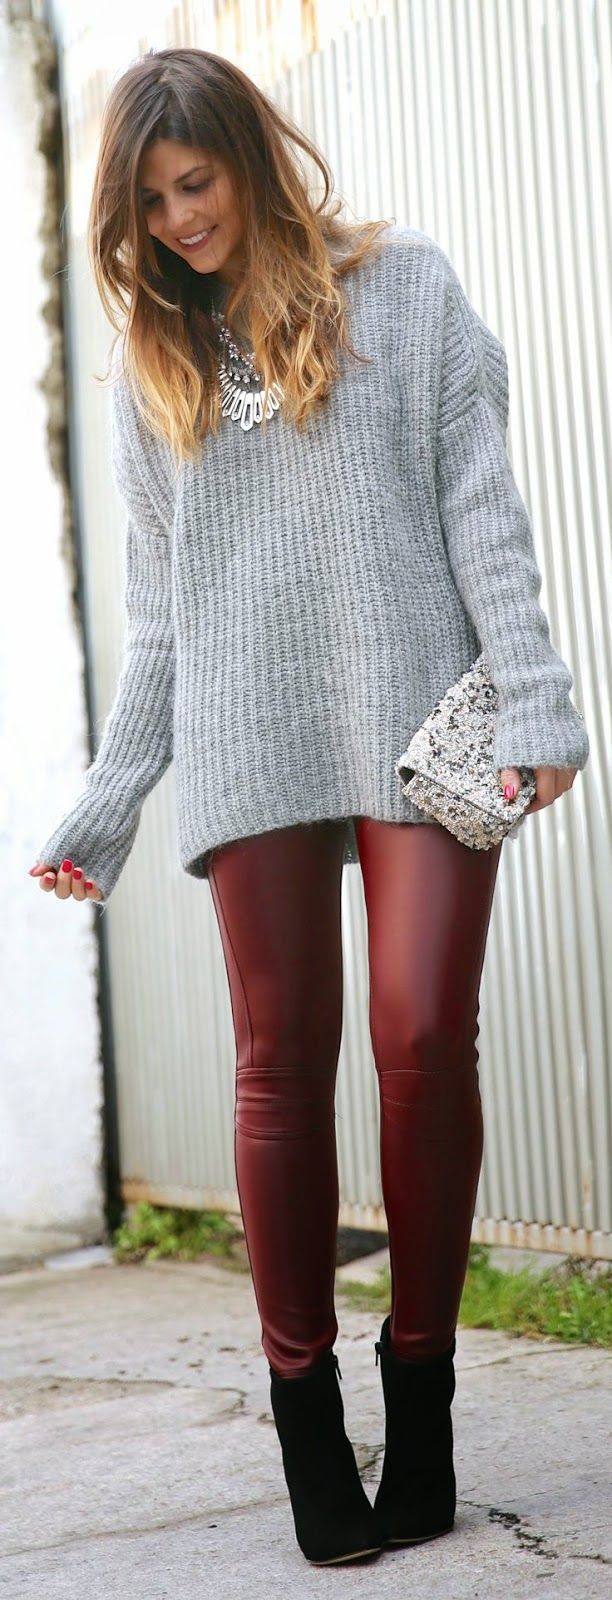 Burgundy Leather Leggings with Grey Oversized Sweater and Black Long Booties | TrendyTaste